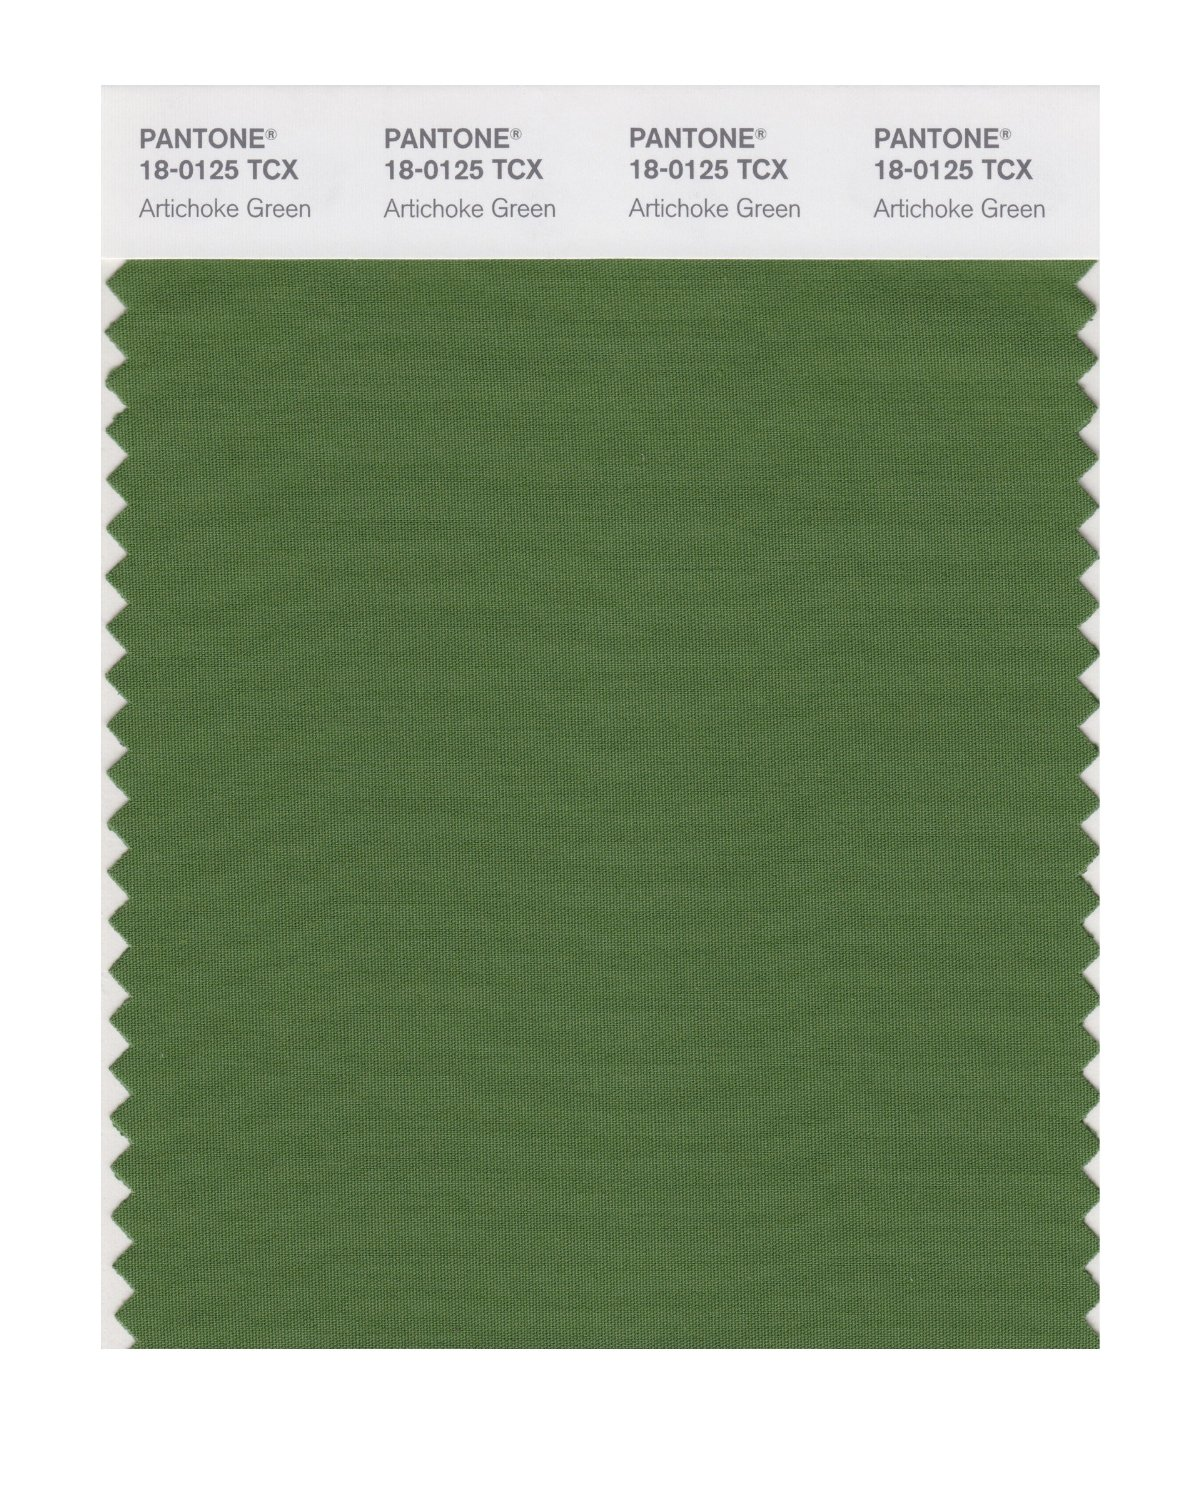 Pantone Smart Swatch 18-0125 Artichoke Green